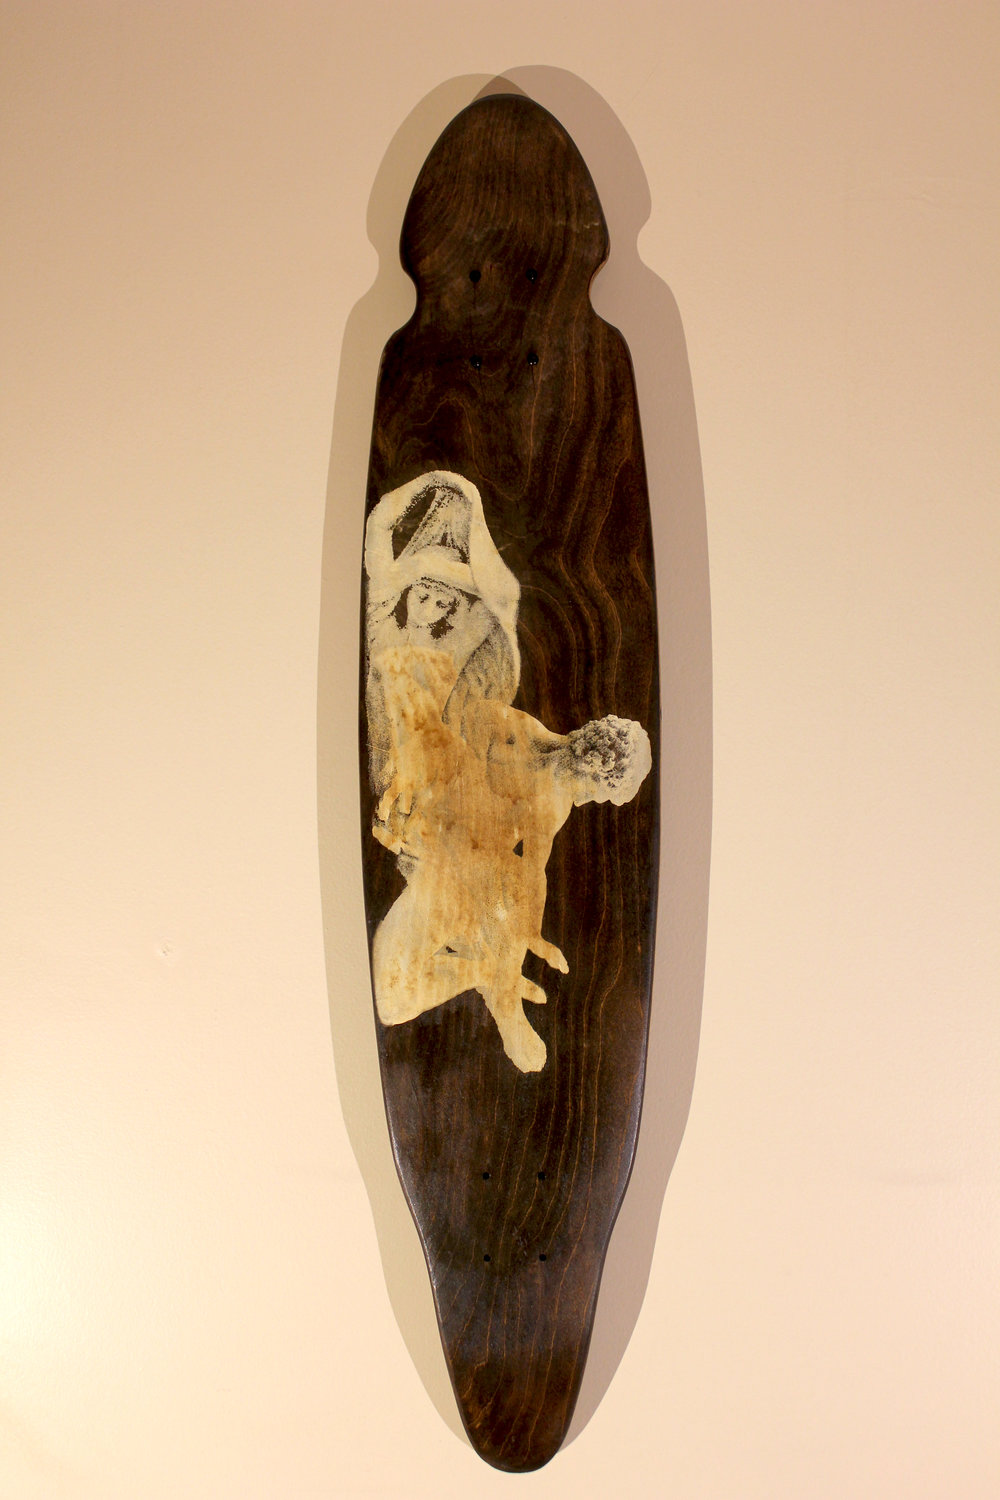 Marble   $300 longboard, acrylic ink, woodstain, wood seal